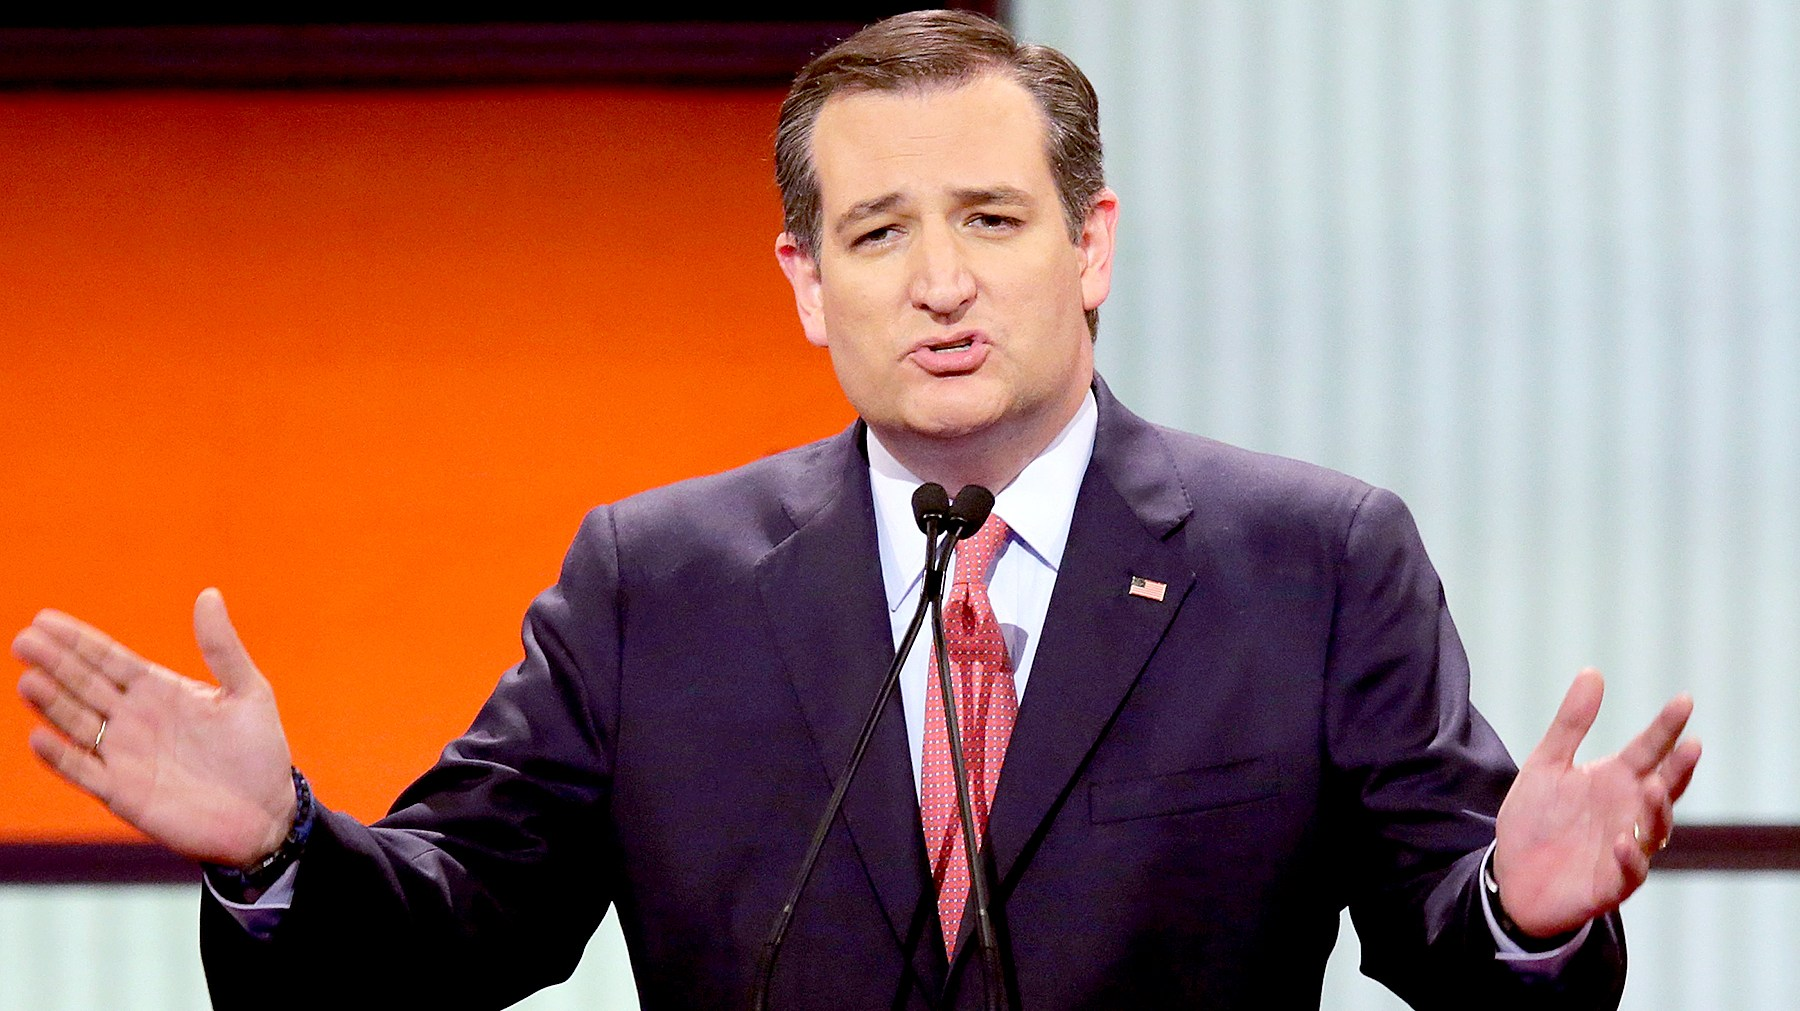 Republican presidential candidate Sen. Ted Cruz participates in a debate sponsored by Fox News at the Fox Theatre on March 3, 2016 in Detroit, Michigan.